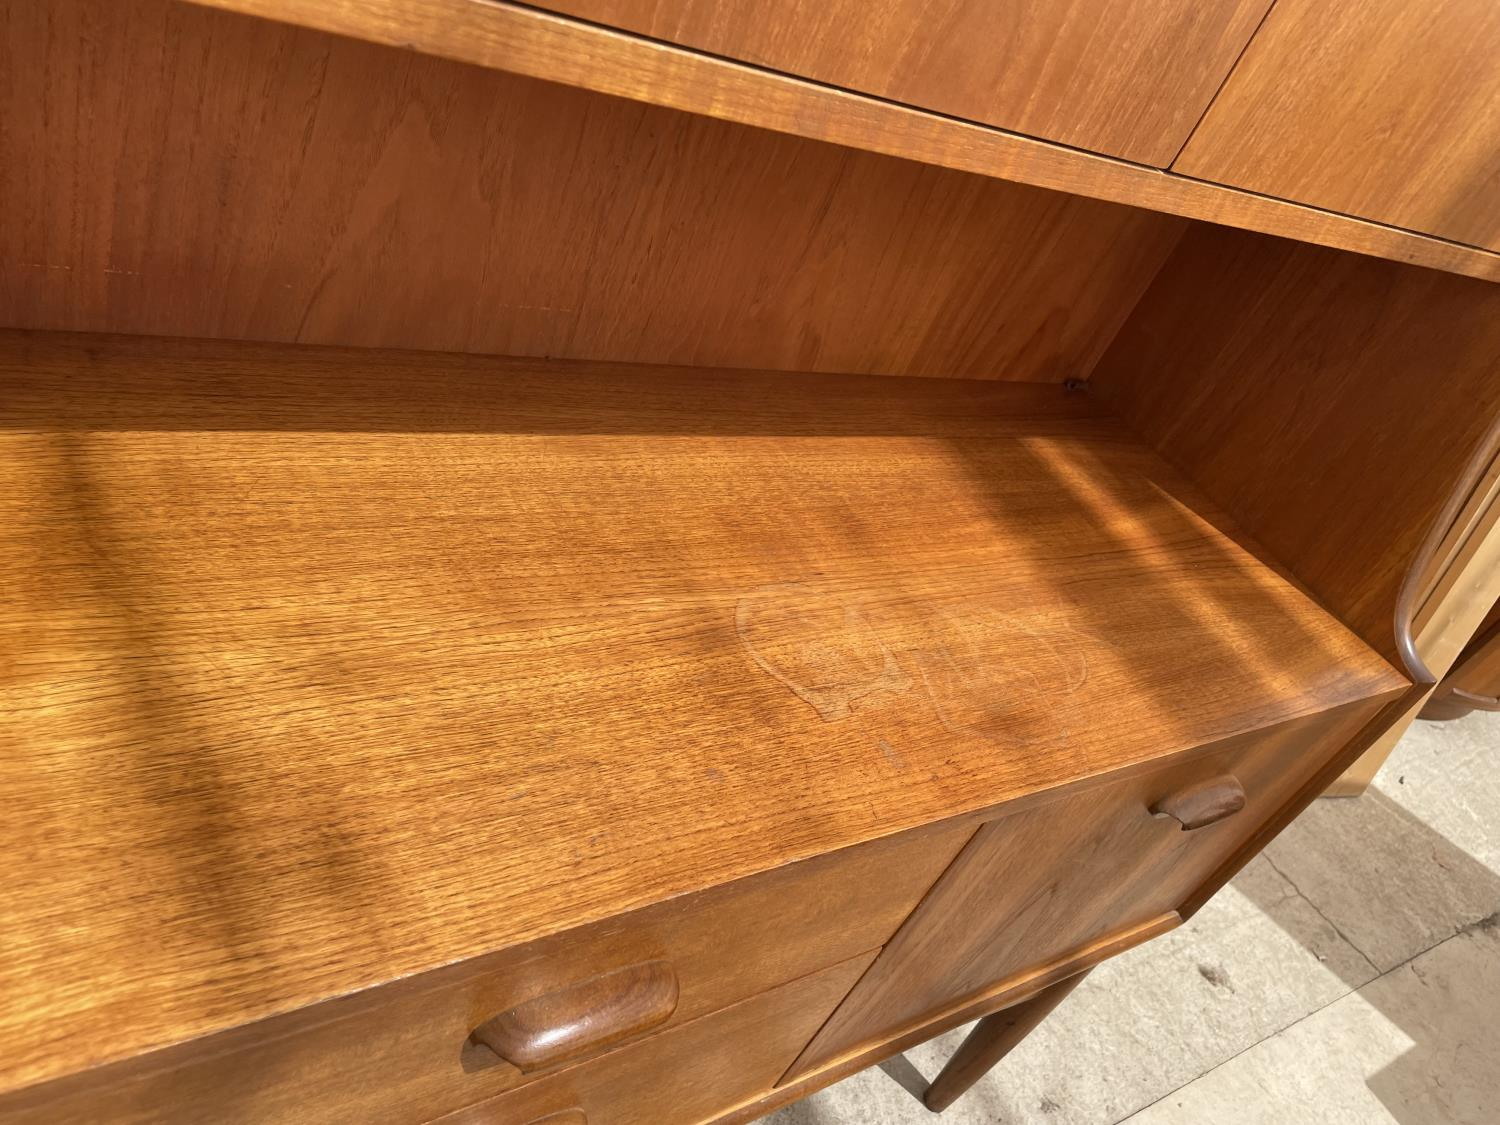 A G PLAN RETRO TEAK SIDEBOARD WITH UPPER CABINET - Image 4 of 8